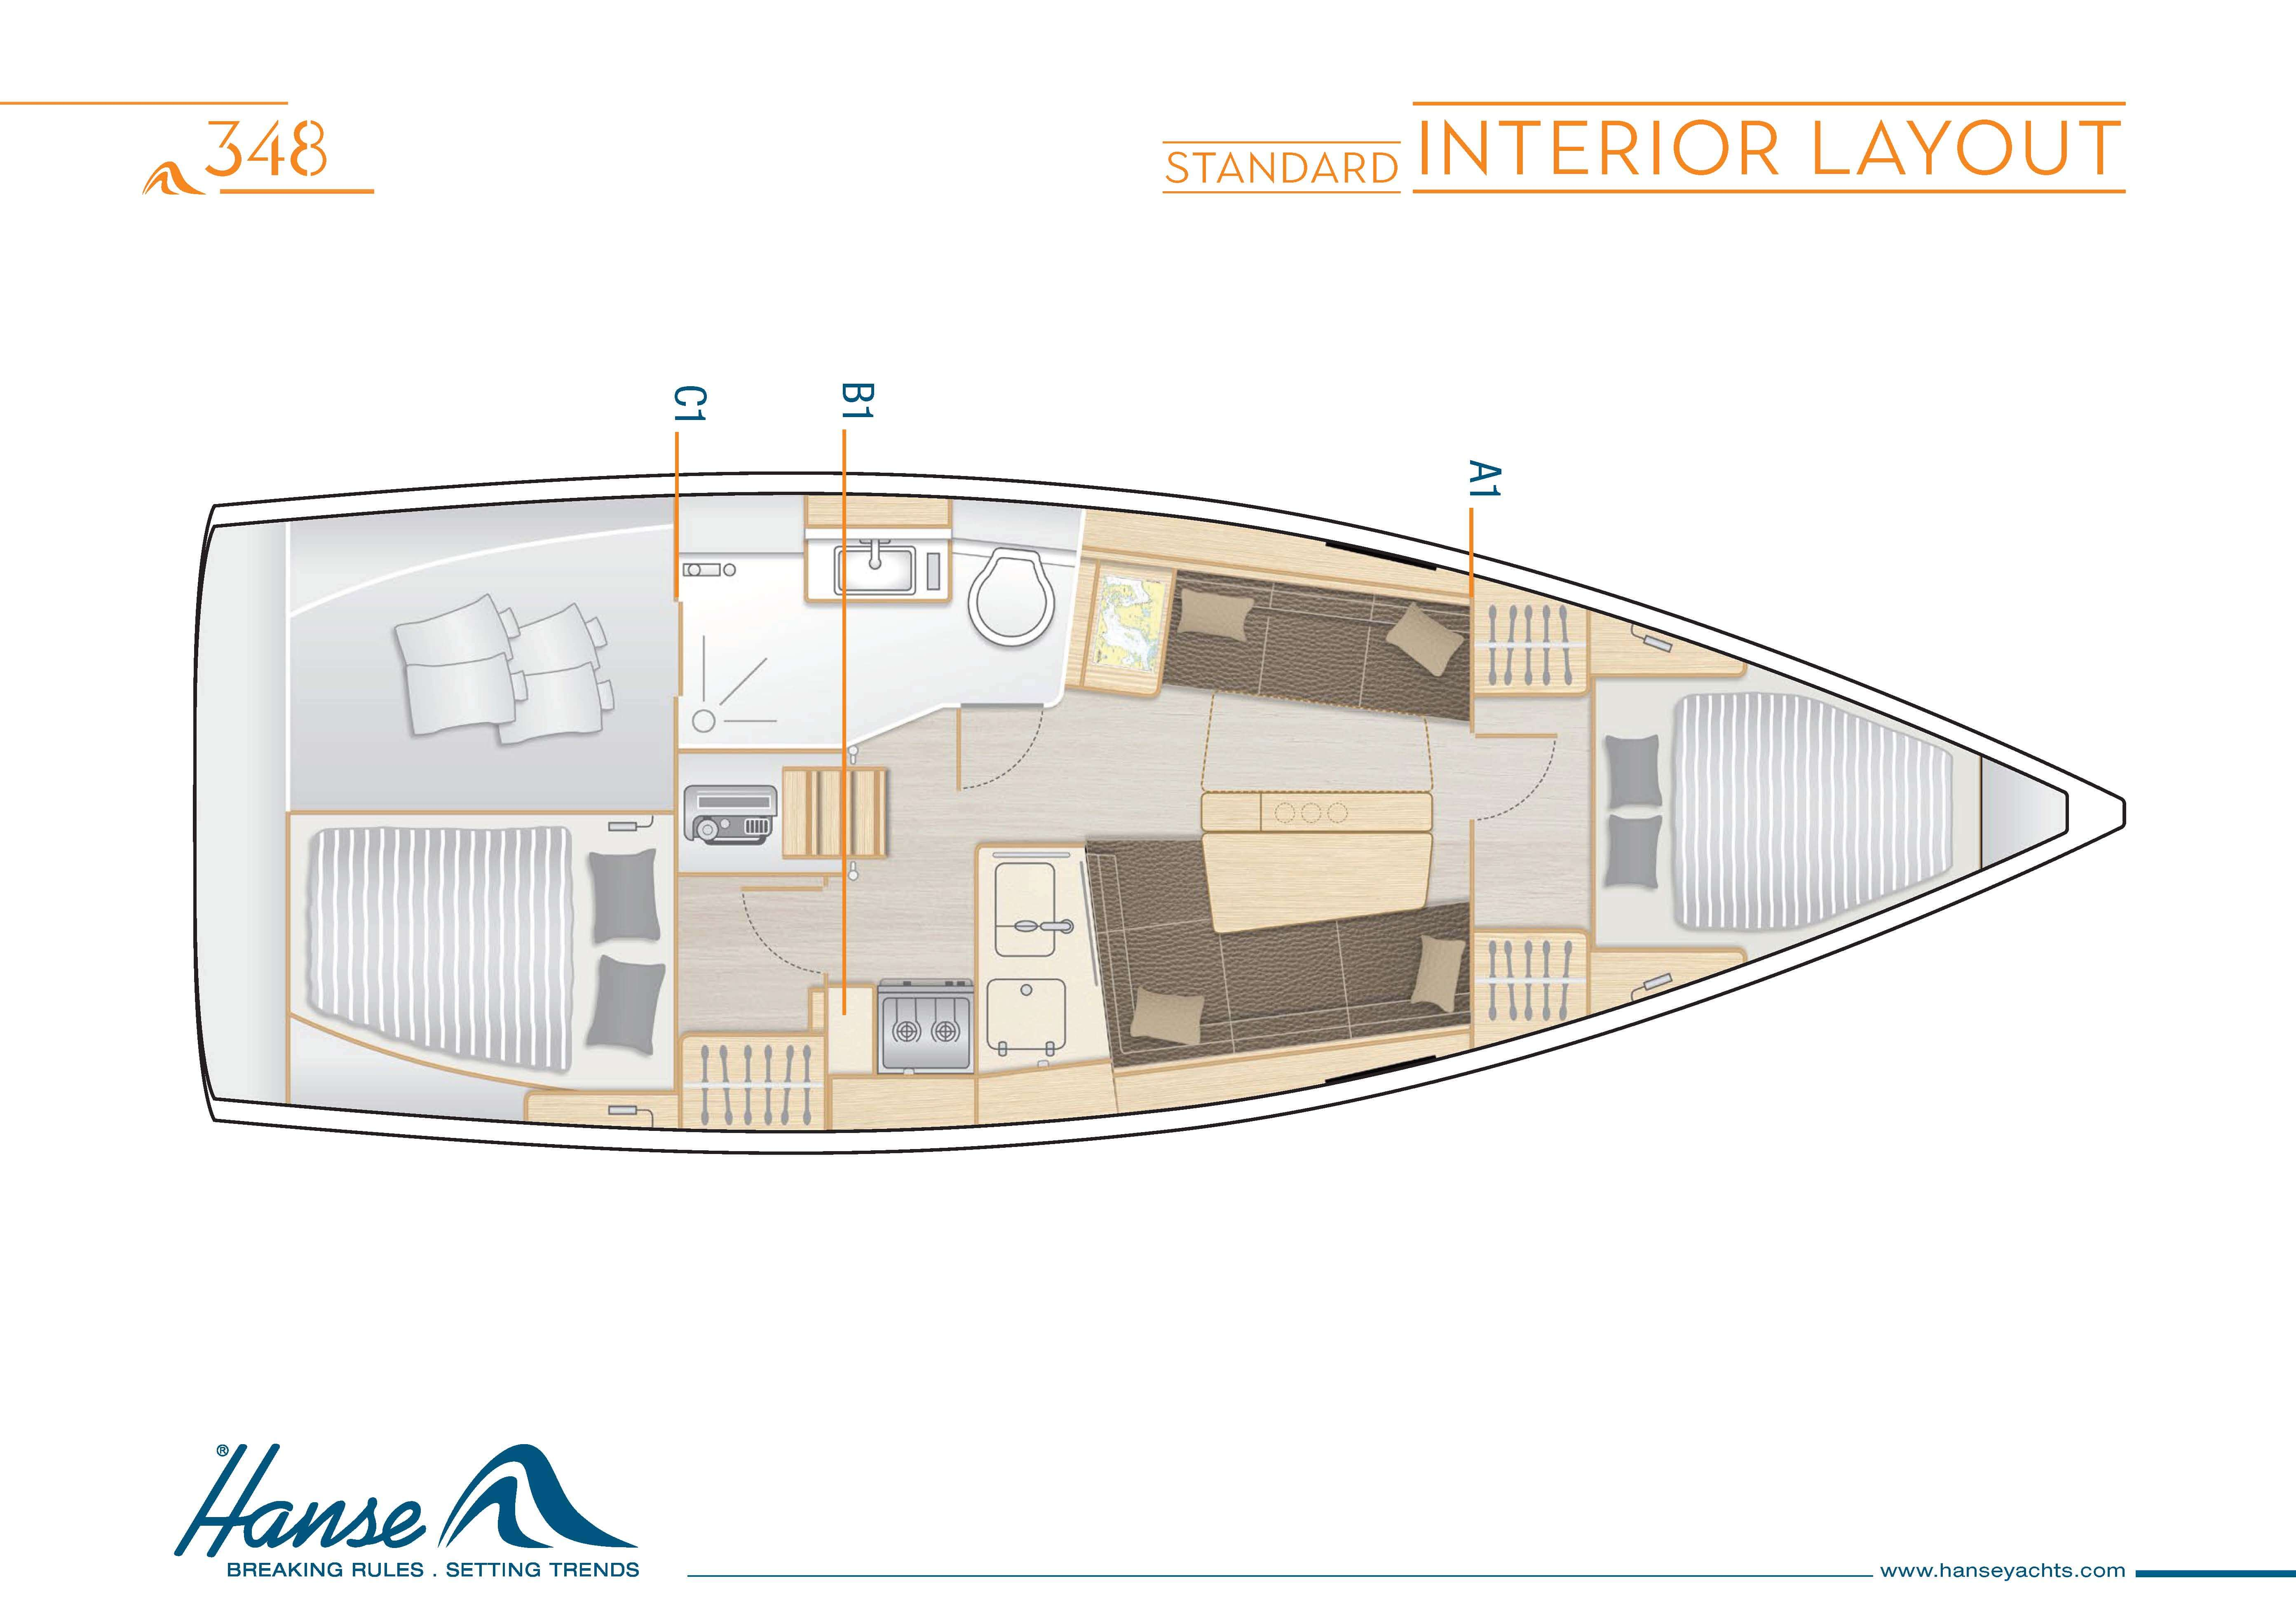 Hanse_348_Interior_Layout_A1_B1_C1